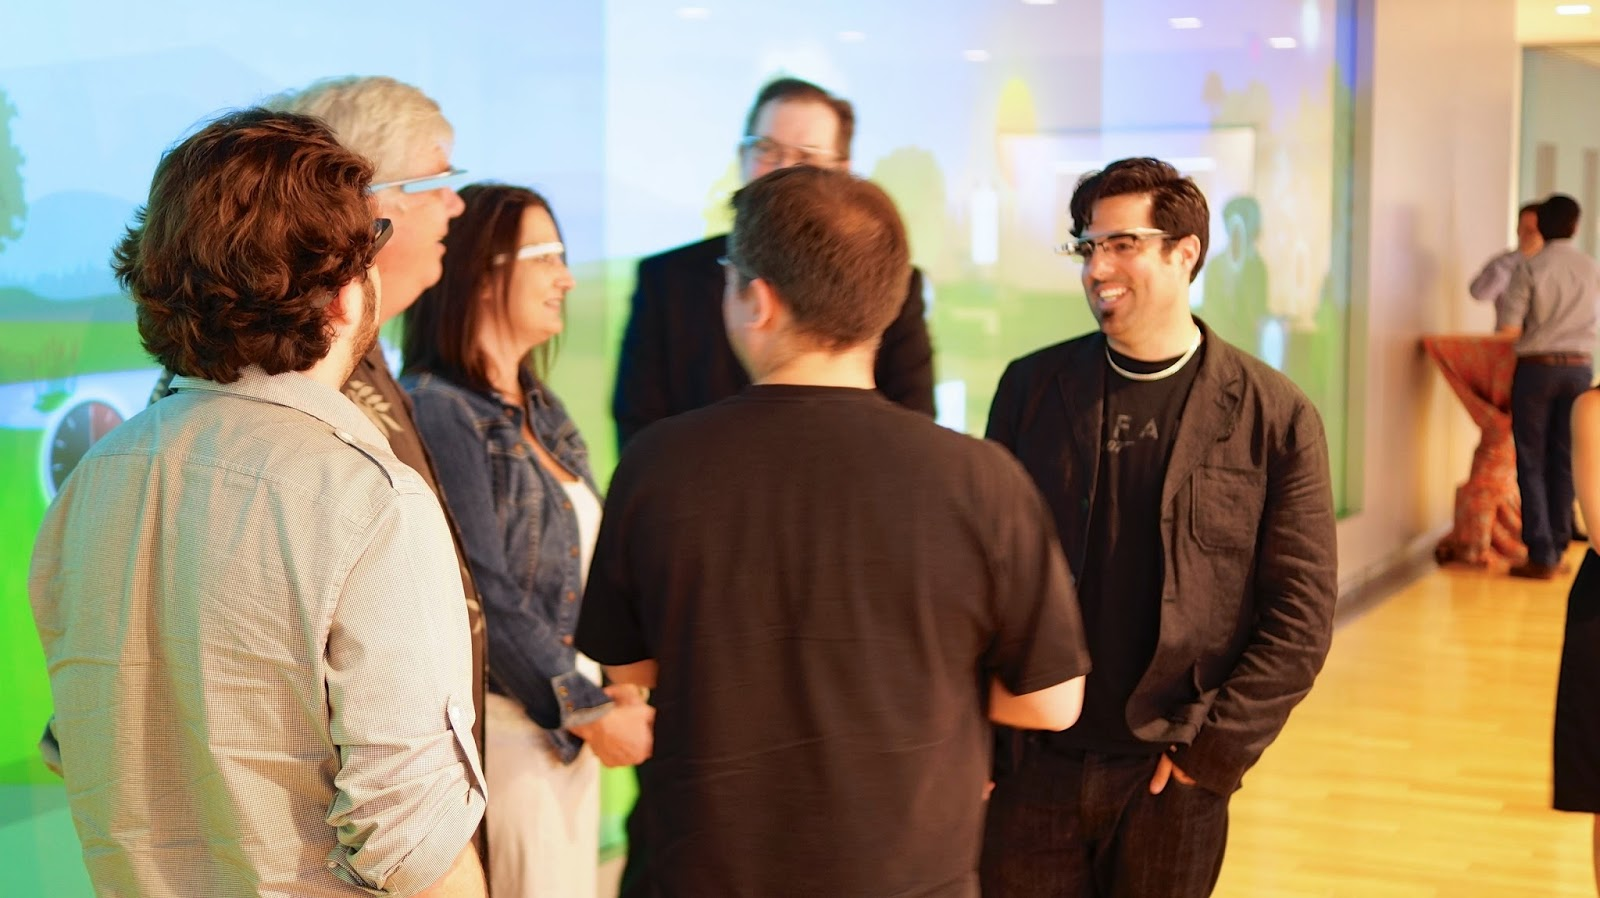 Using Google Glass at events like trade shows